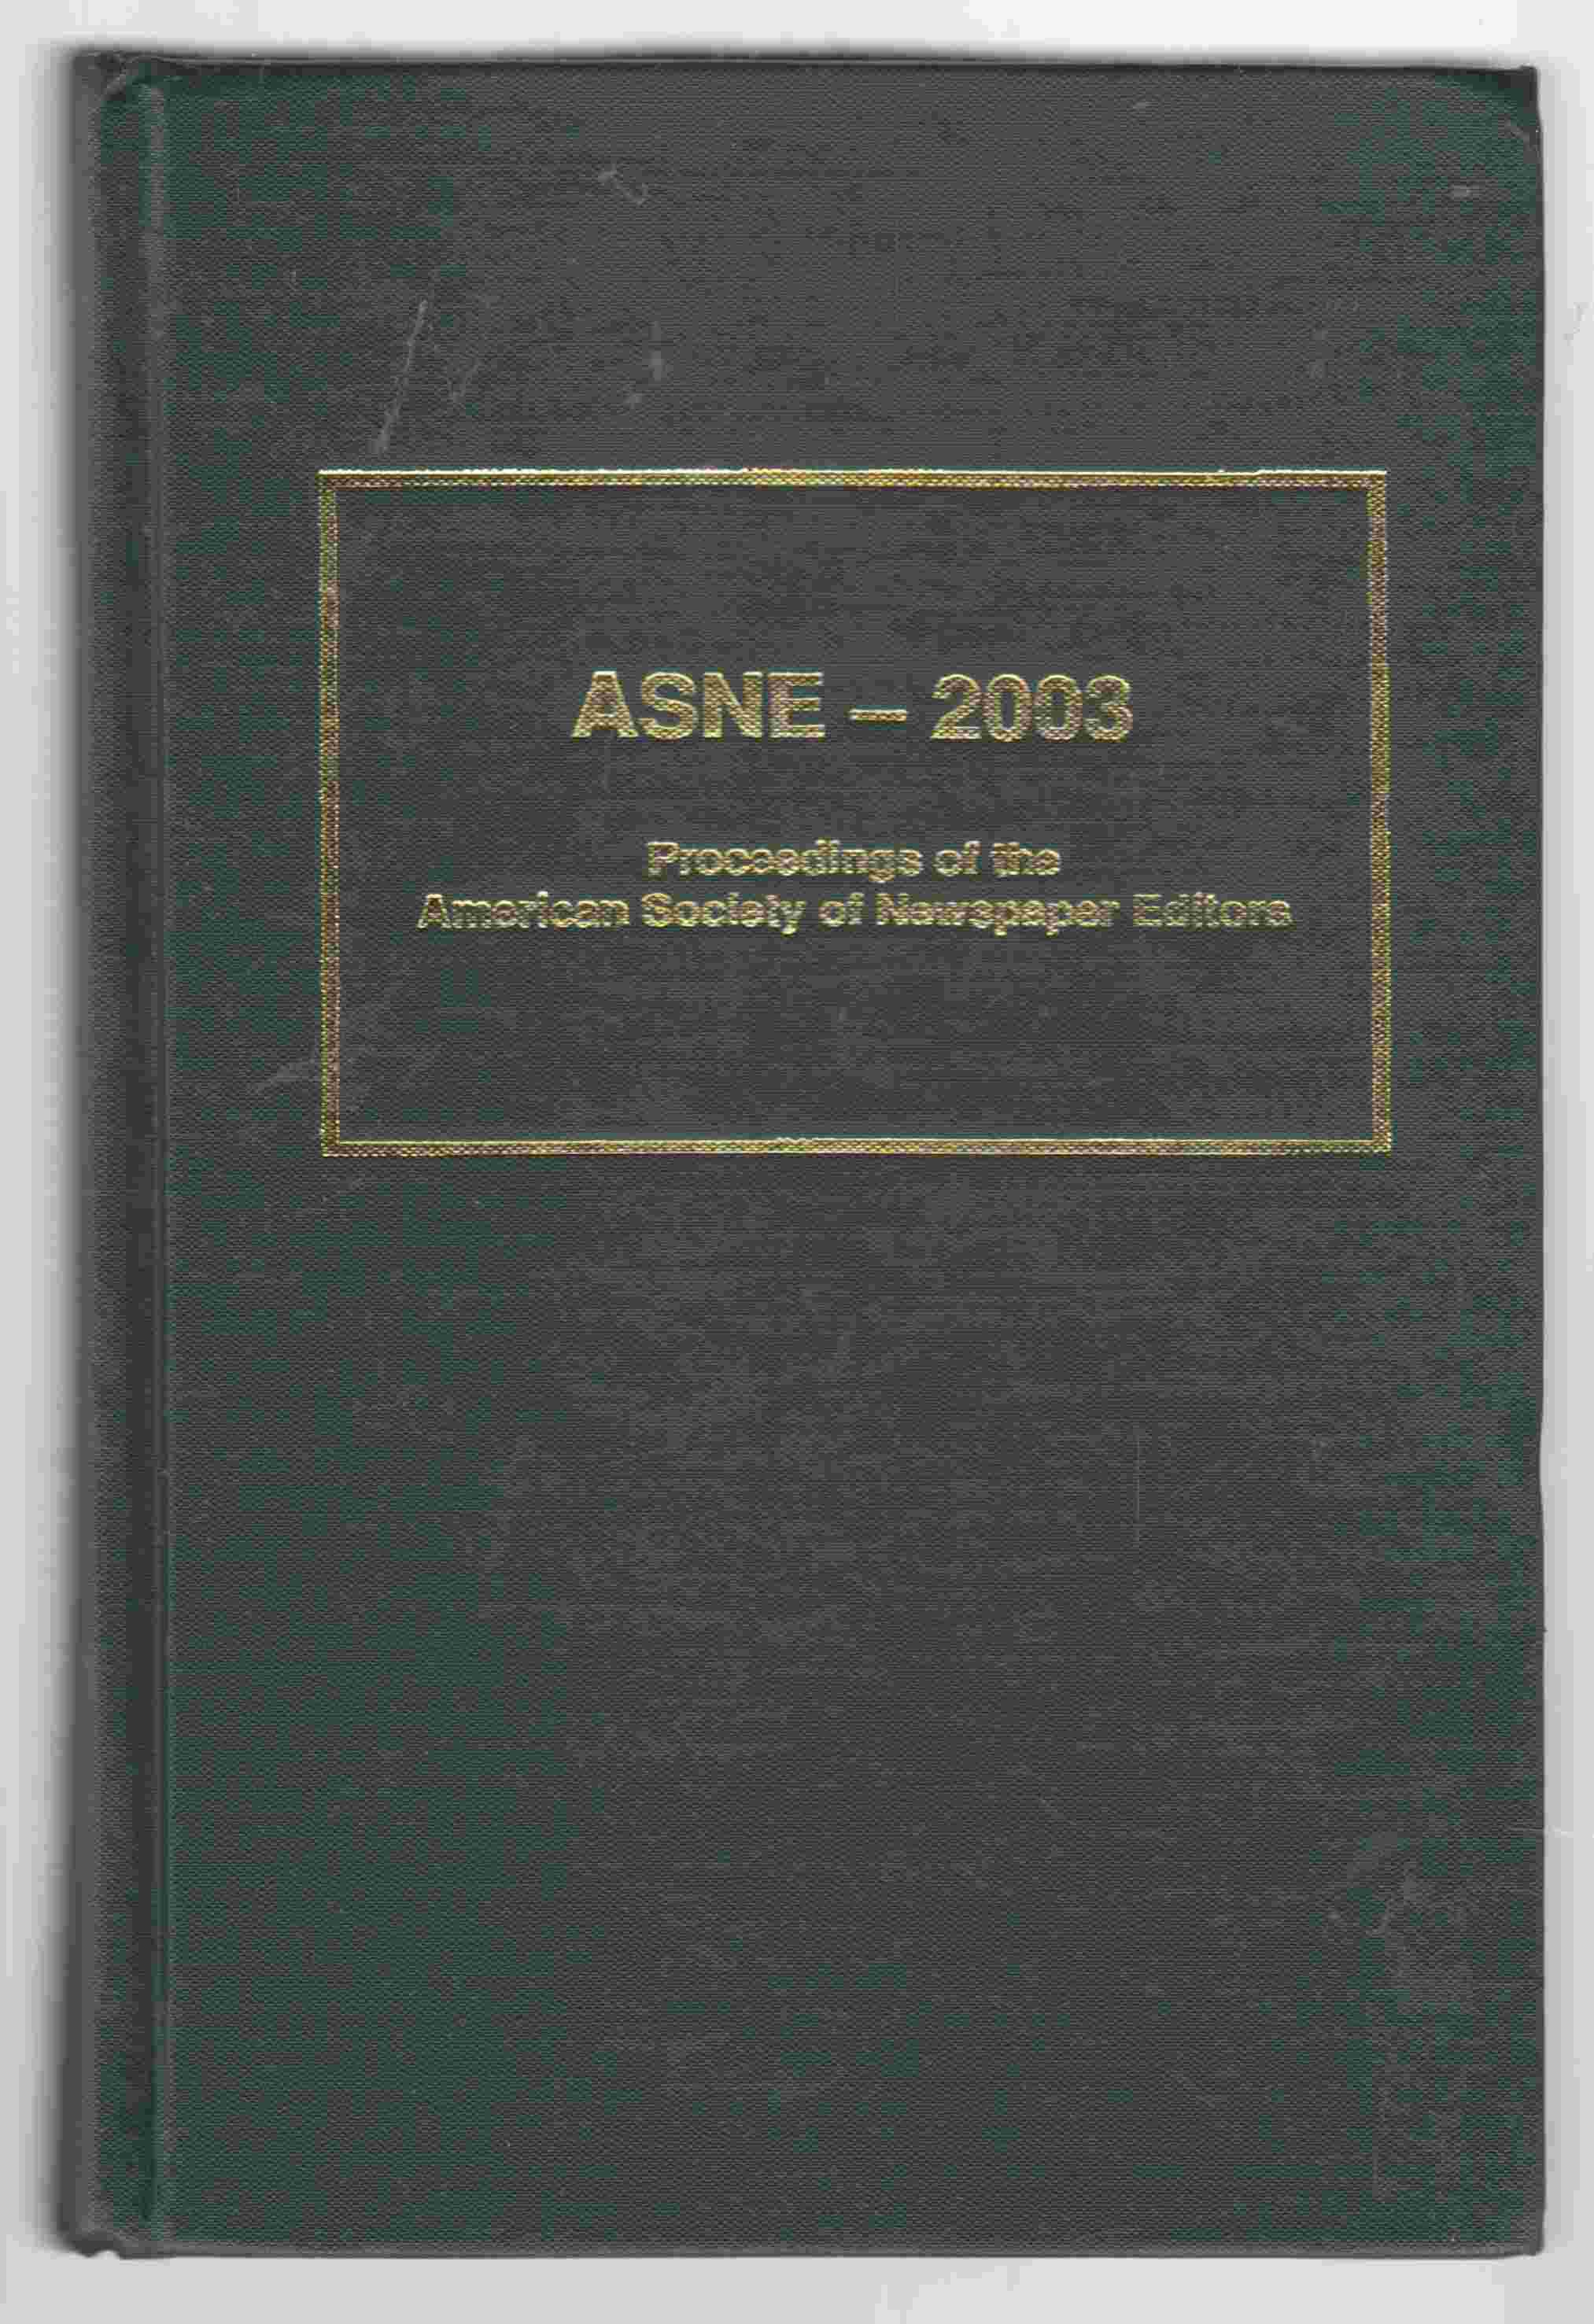 Image for ASNE - 2003: Proceedings of the American Society of Newspaper Editors